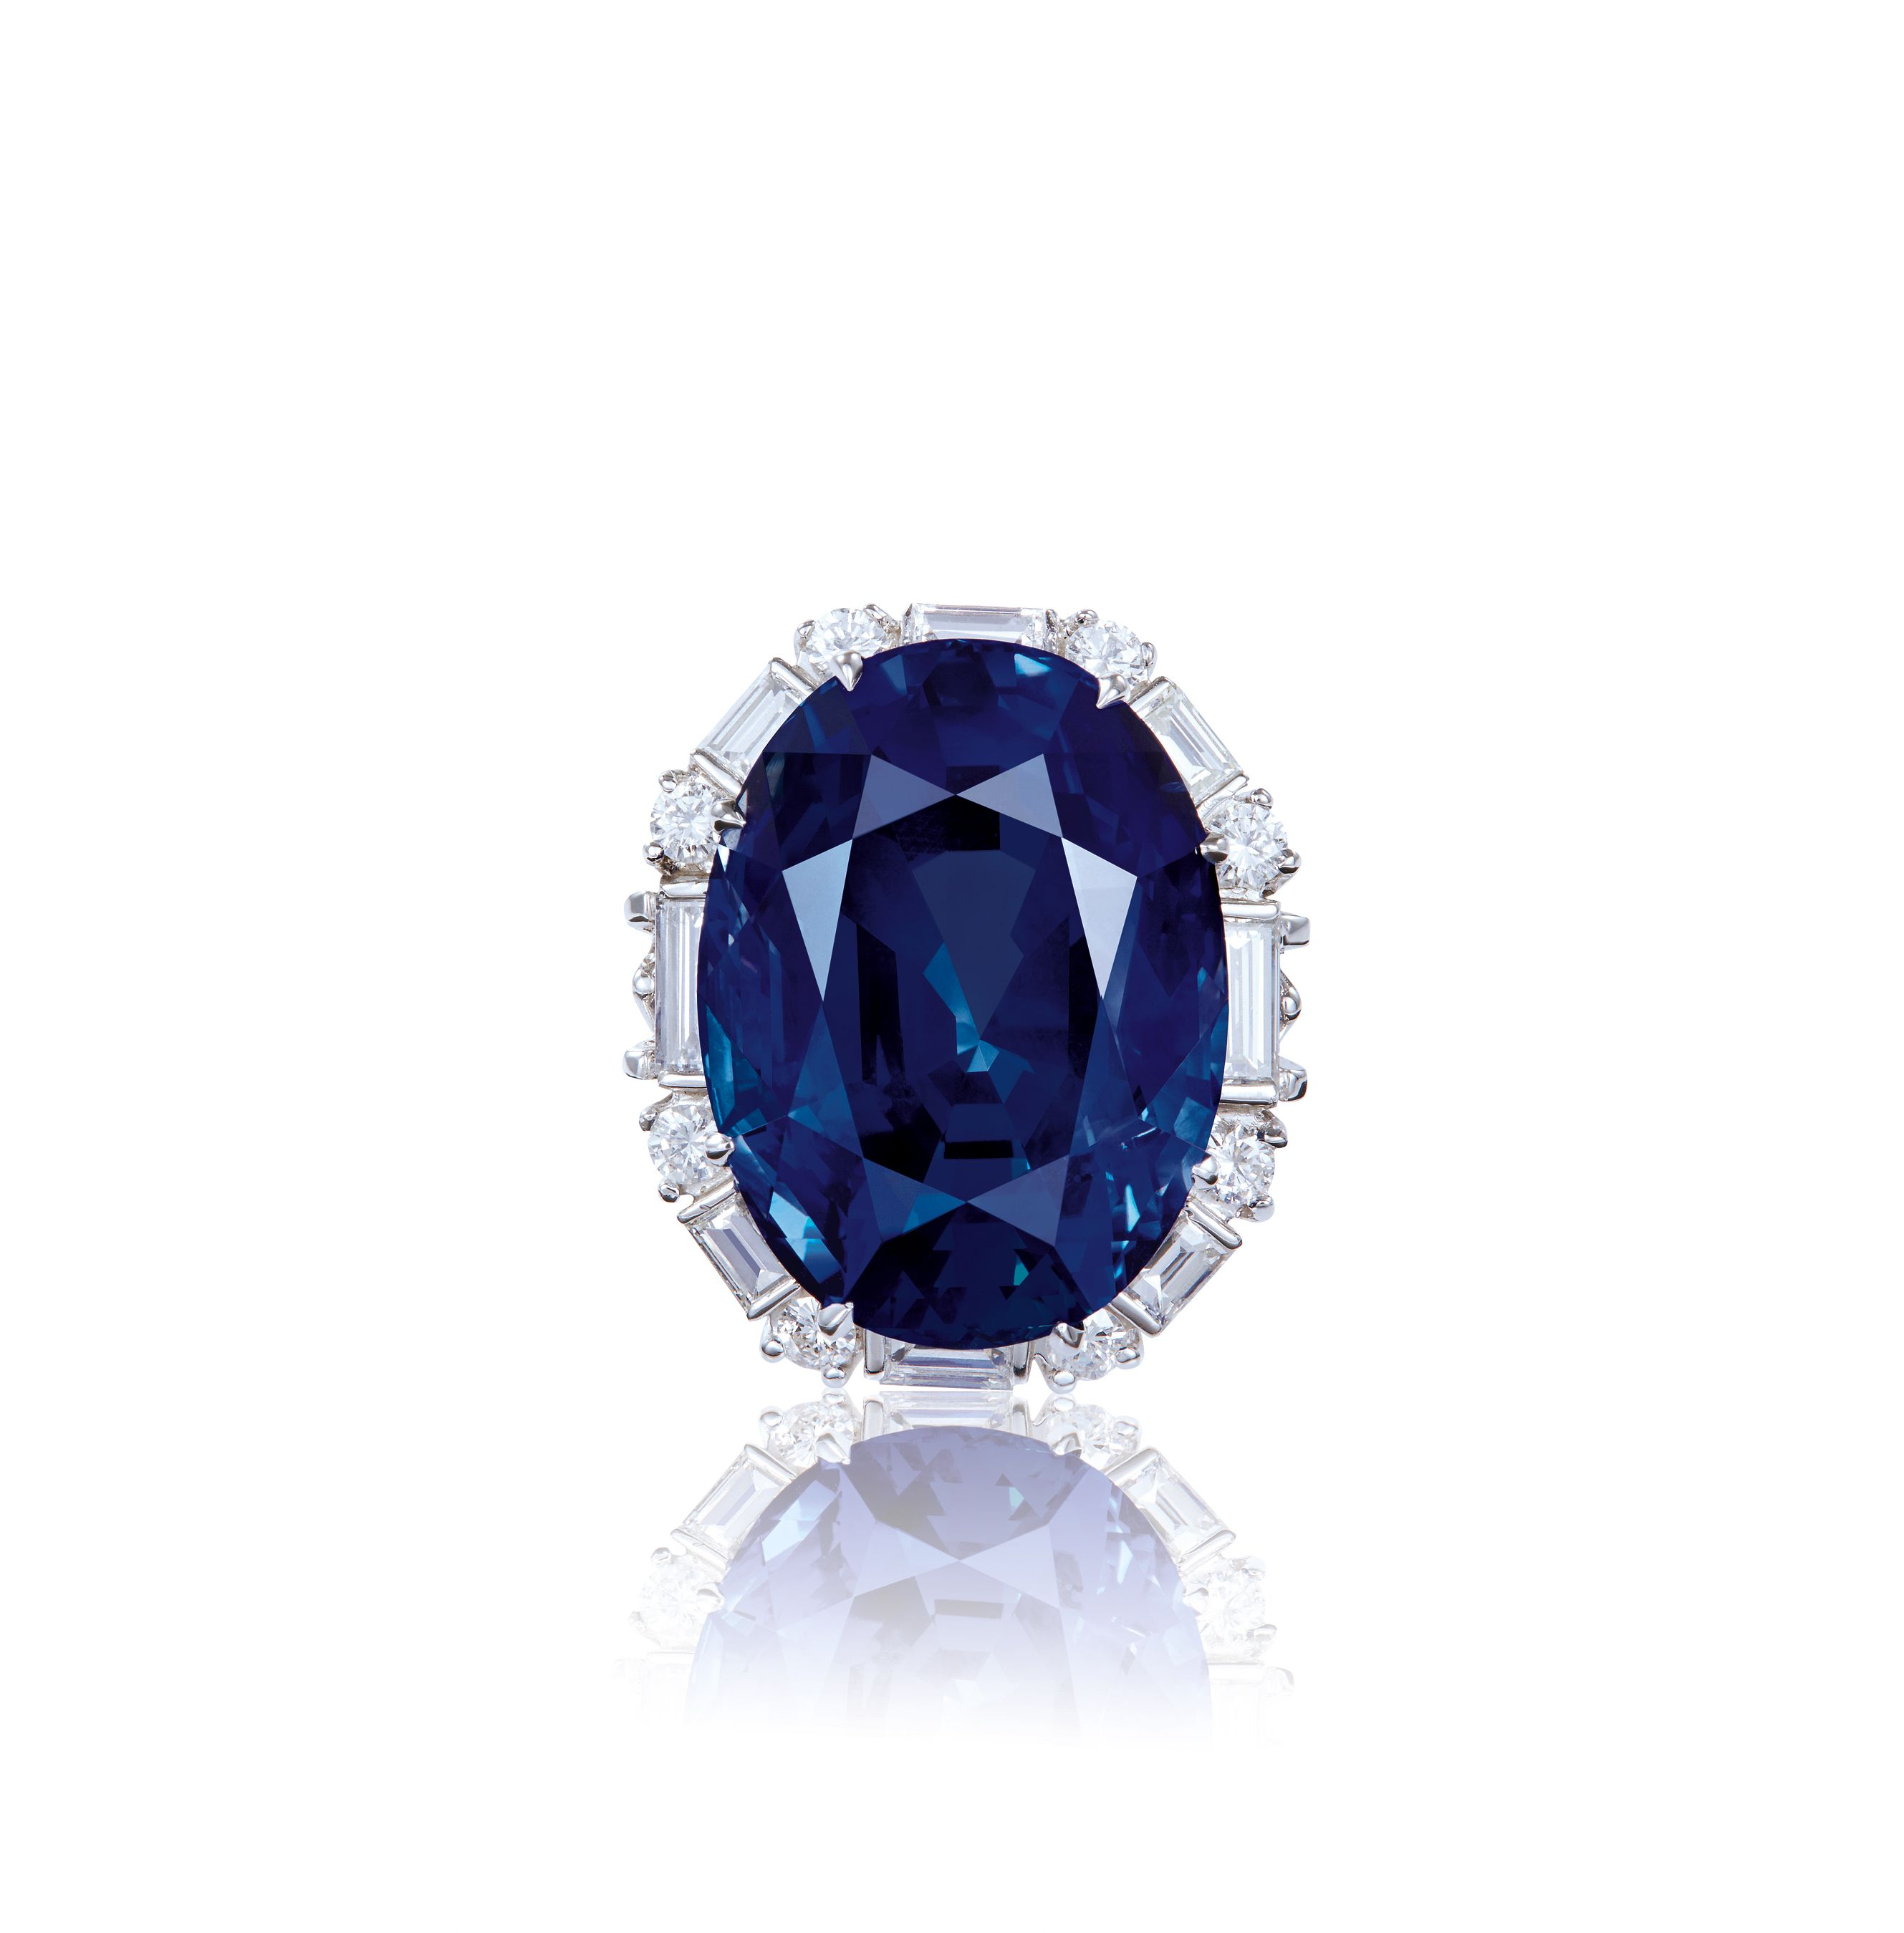 for christies s ct sapphire at lot blog kashmir baguette million christie sells